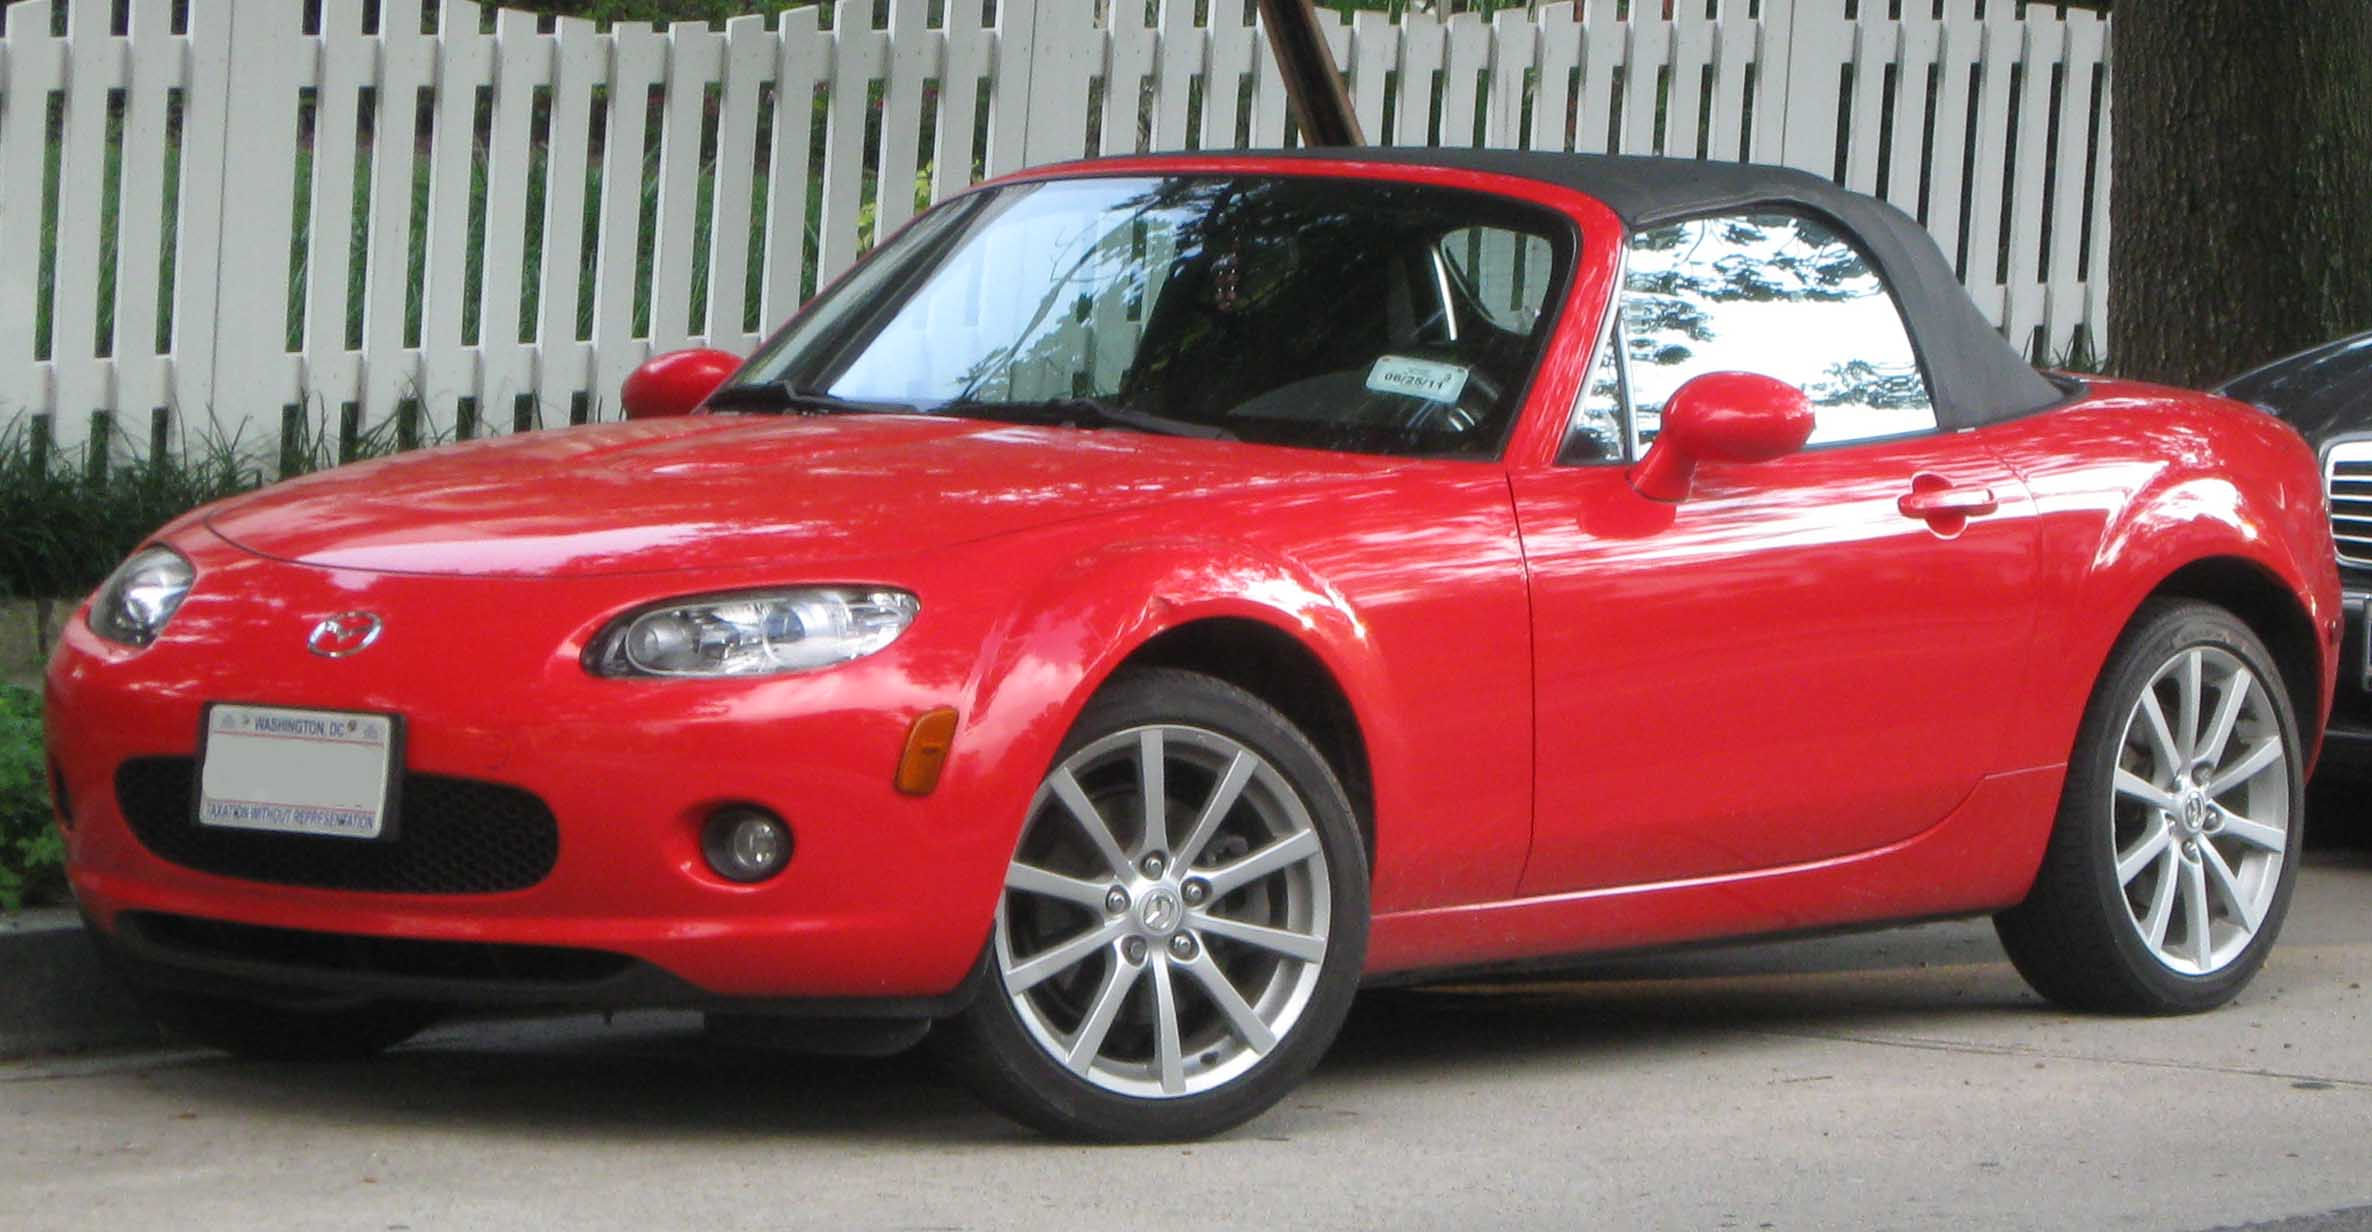 mazda mx5 highly affordable to buy and insure among sports cars. Black Bedroom Furniture Sets. Home Design Ideas